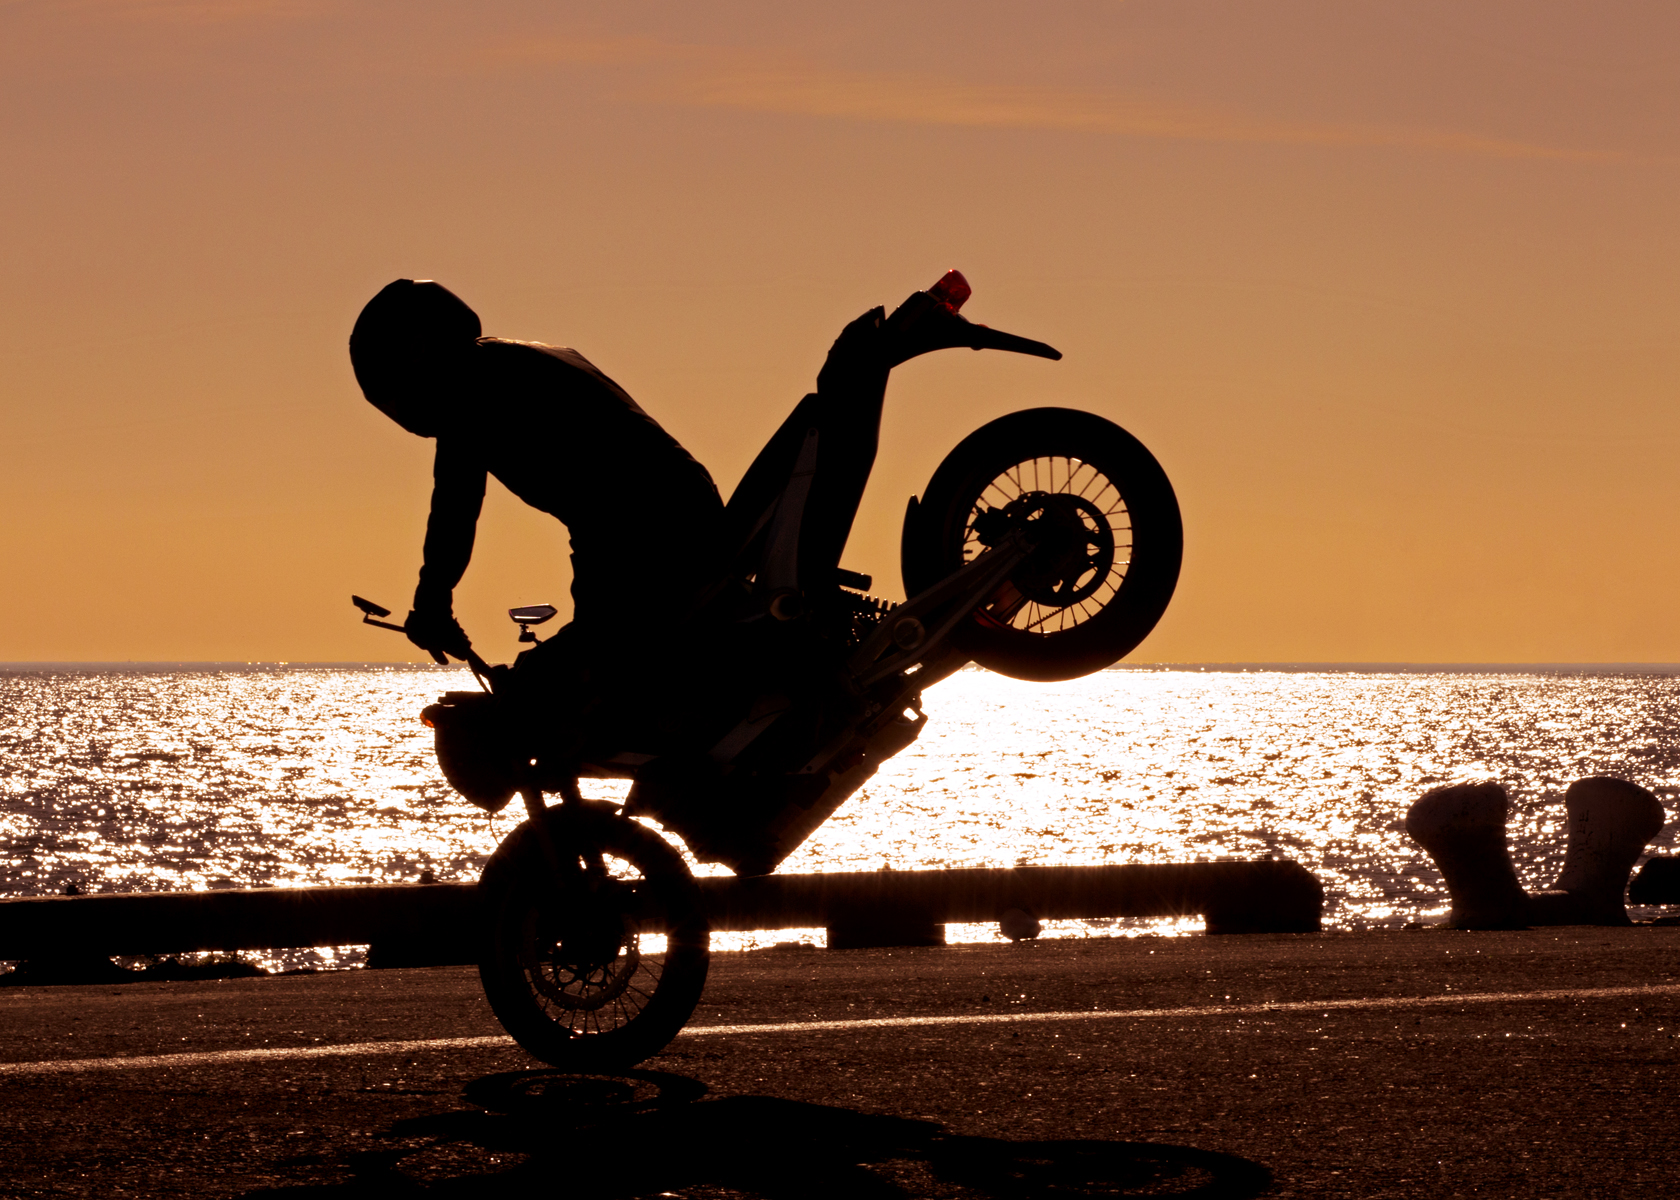 2011 Zero S Electric Motorcycle: Wheelie at Sunset by the Pacific Ocean